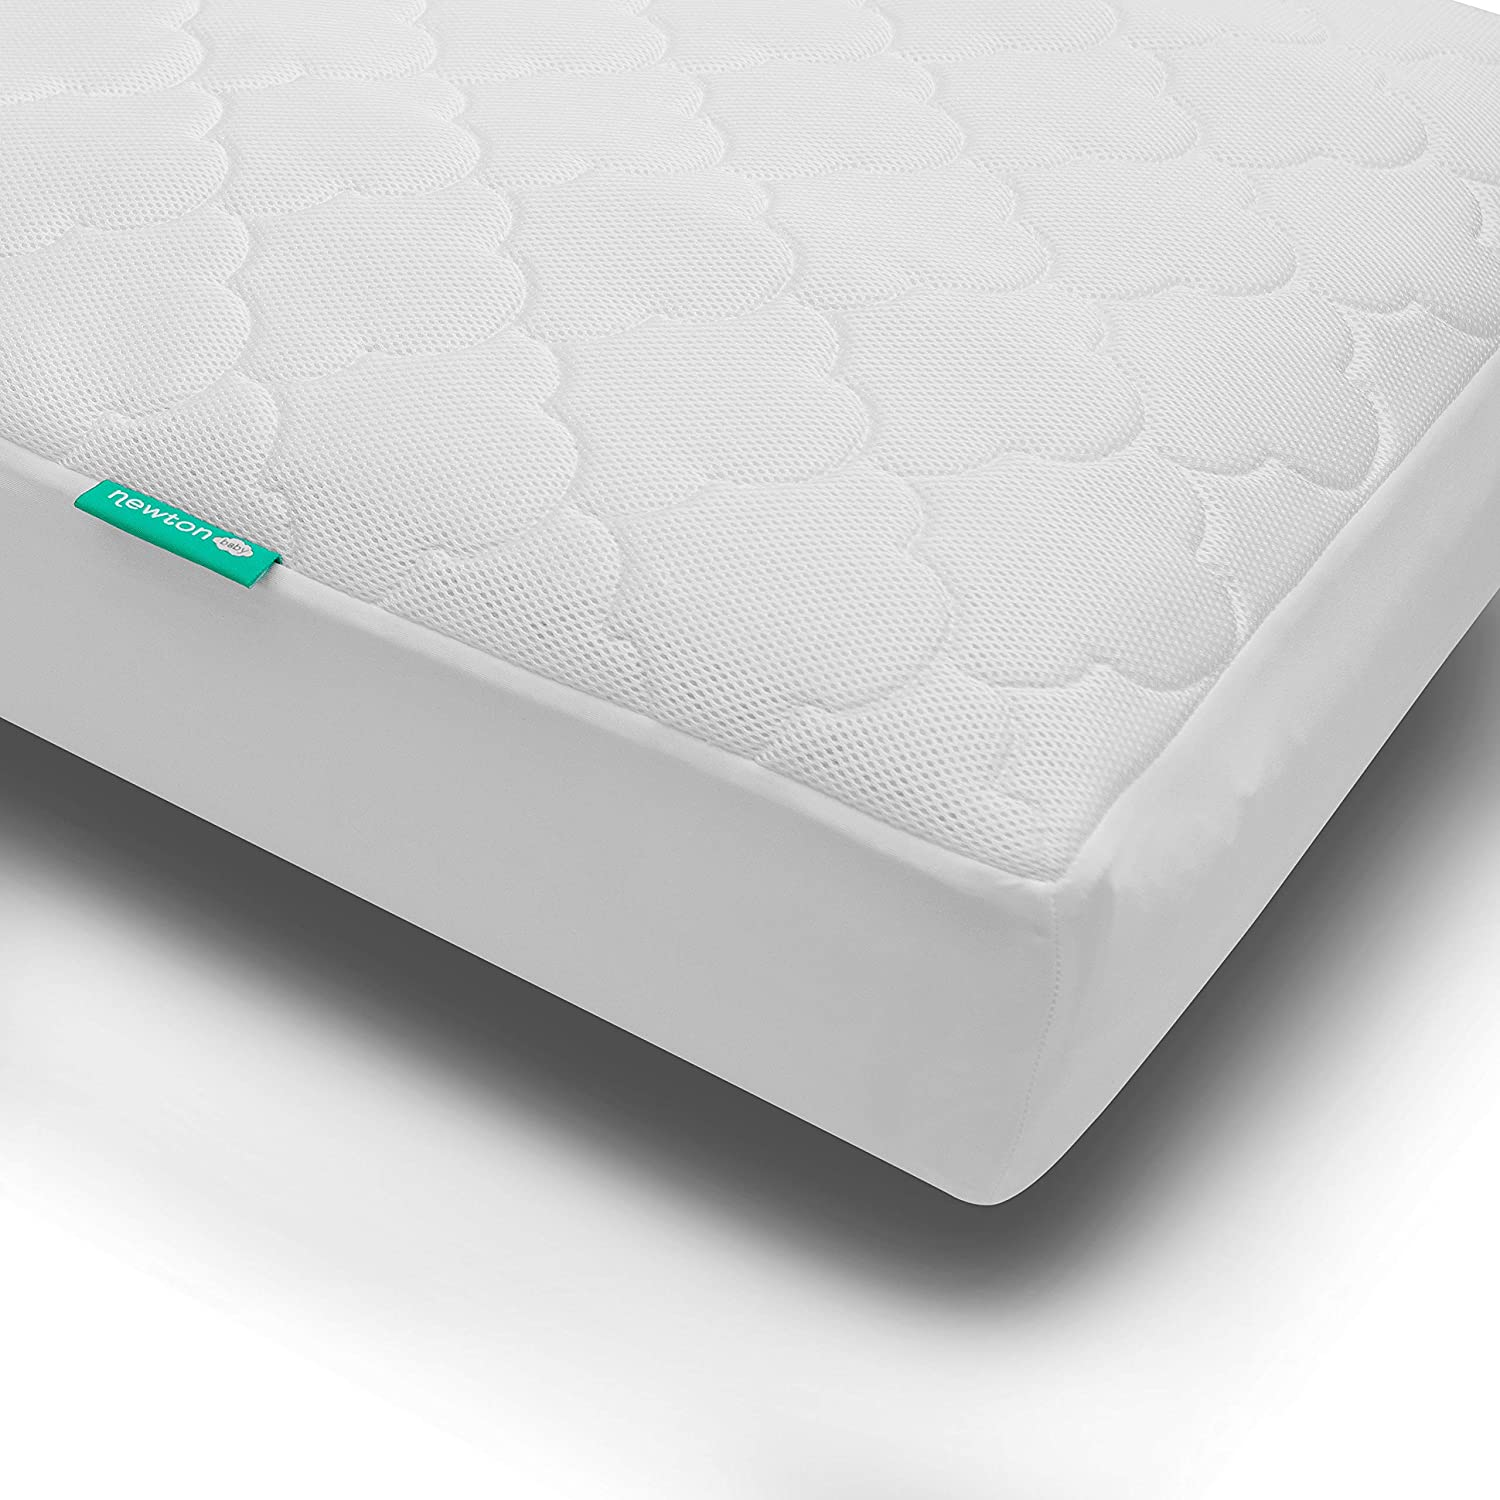 Newton - Best waterproof crib mattress pad